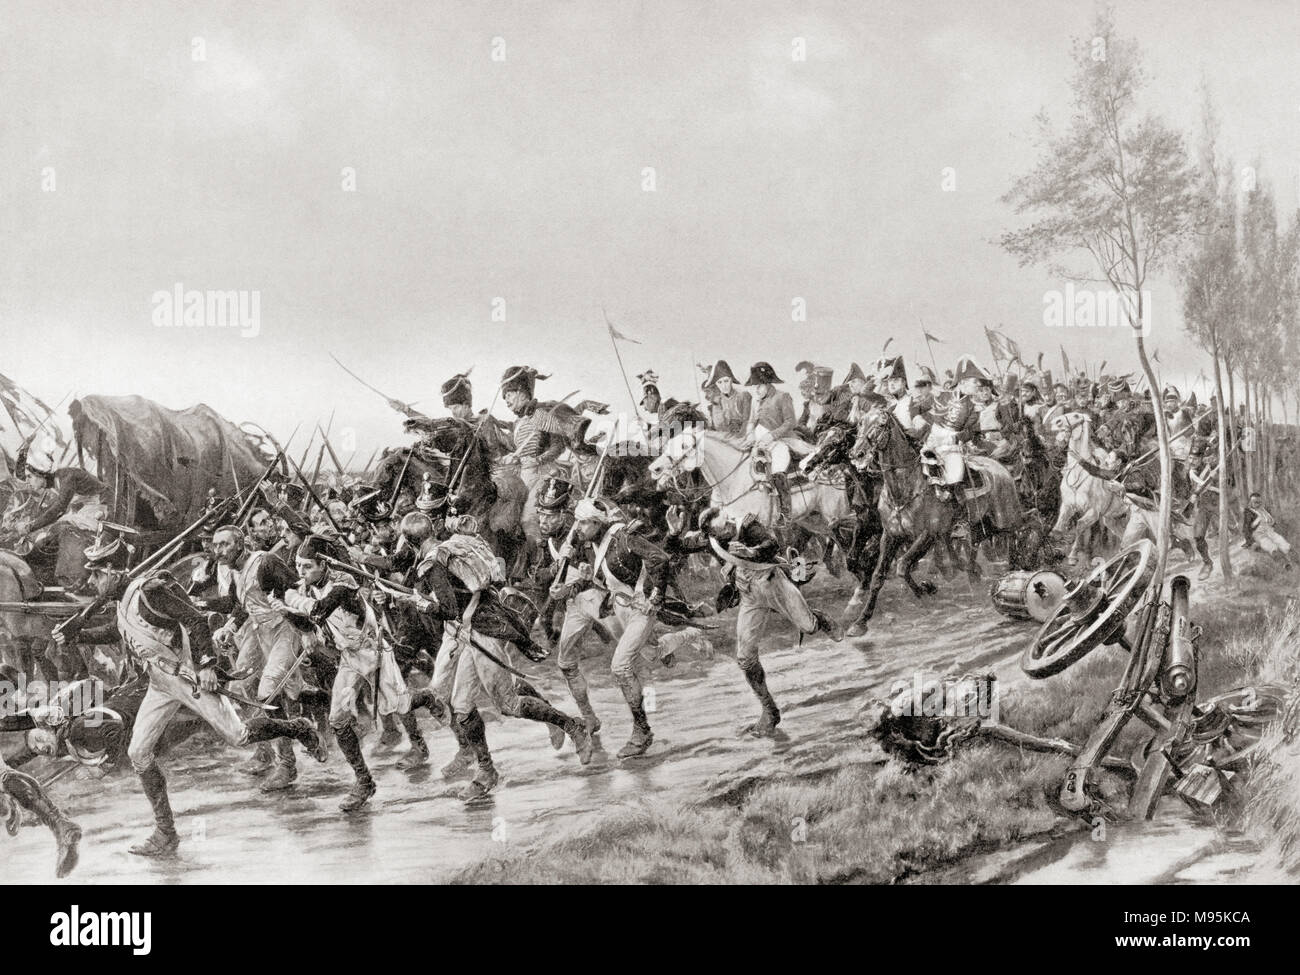 French soldiers running for safety after the Battle of Waterloo, 18th June, 1815.  From Hutchinson's History of the Nations, published 1915 - Stock Image